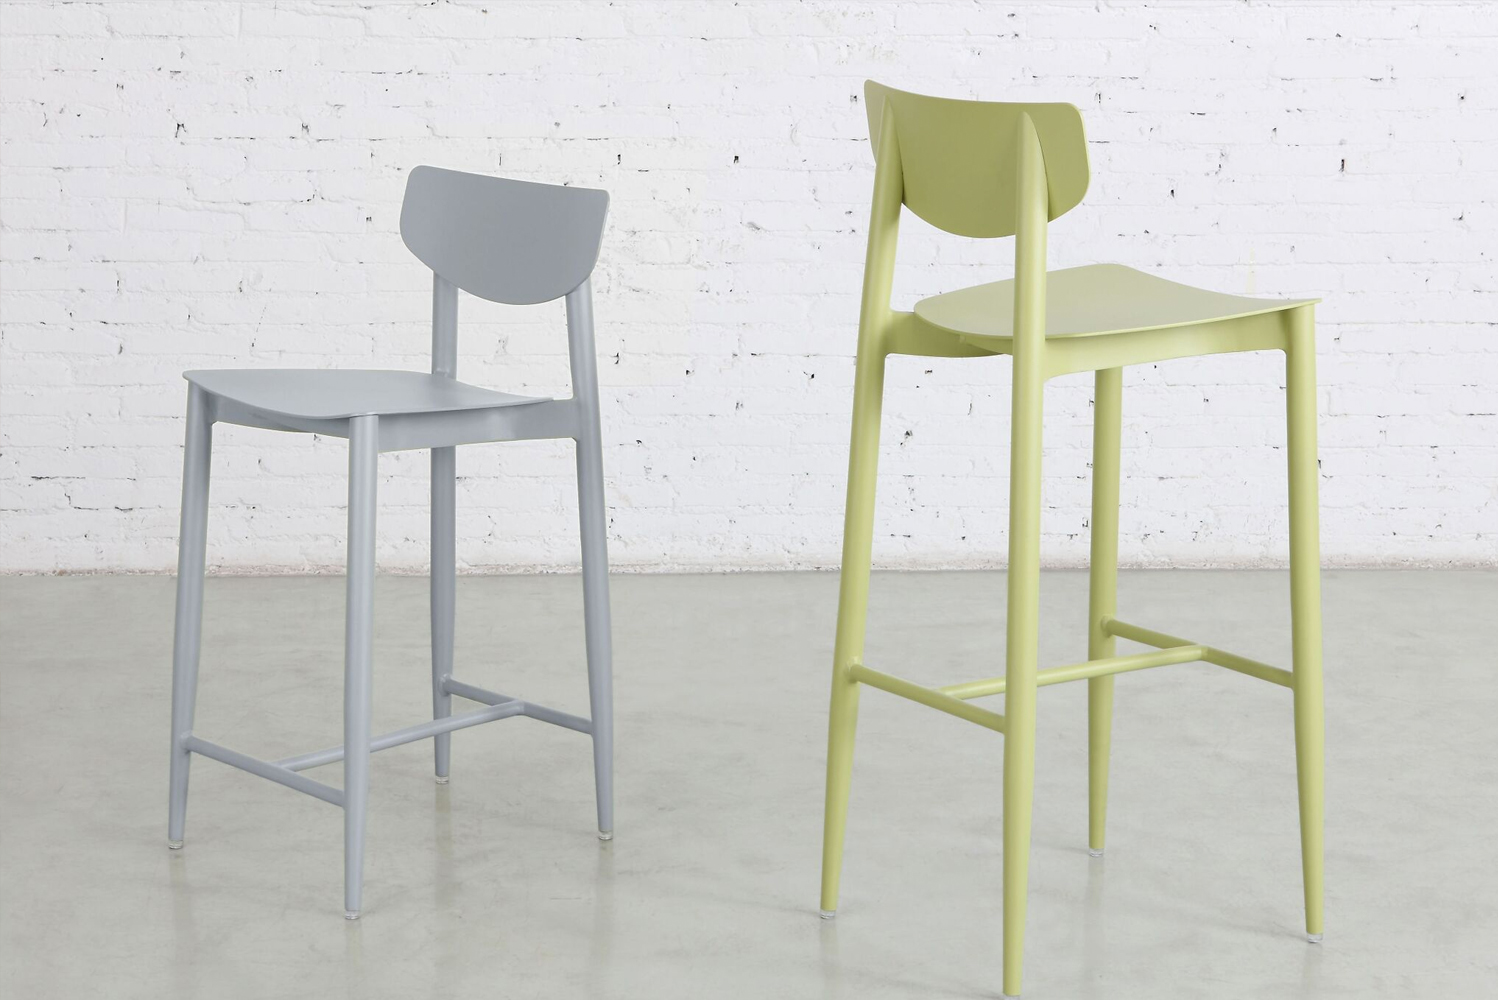 m.a.d. furniture design launched the Ally collection of counter-height stools and chairs.